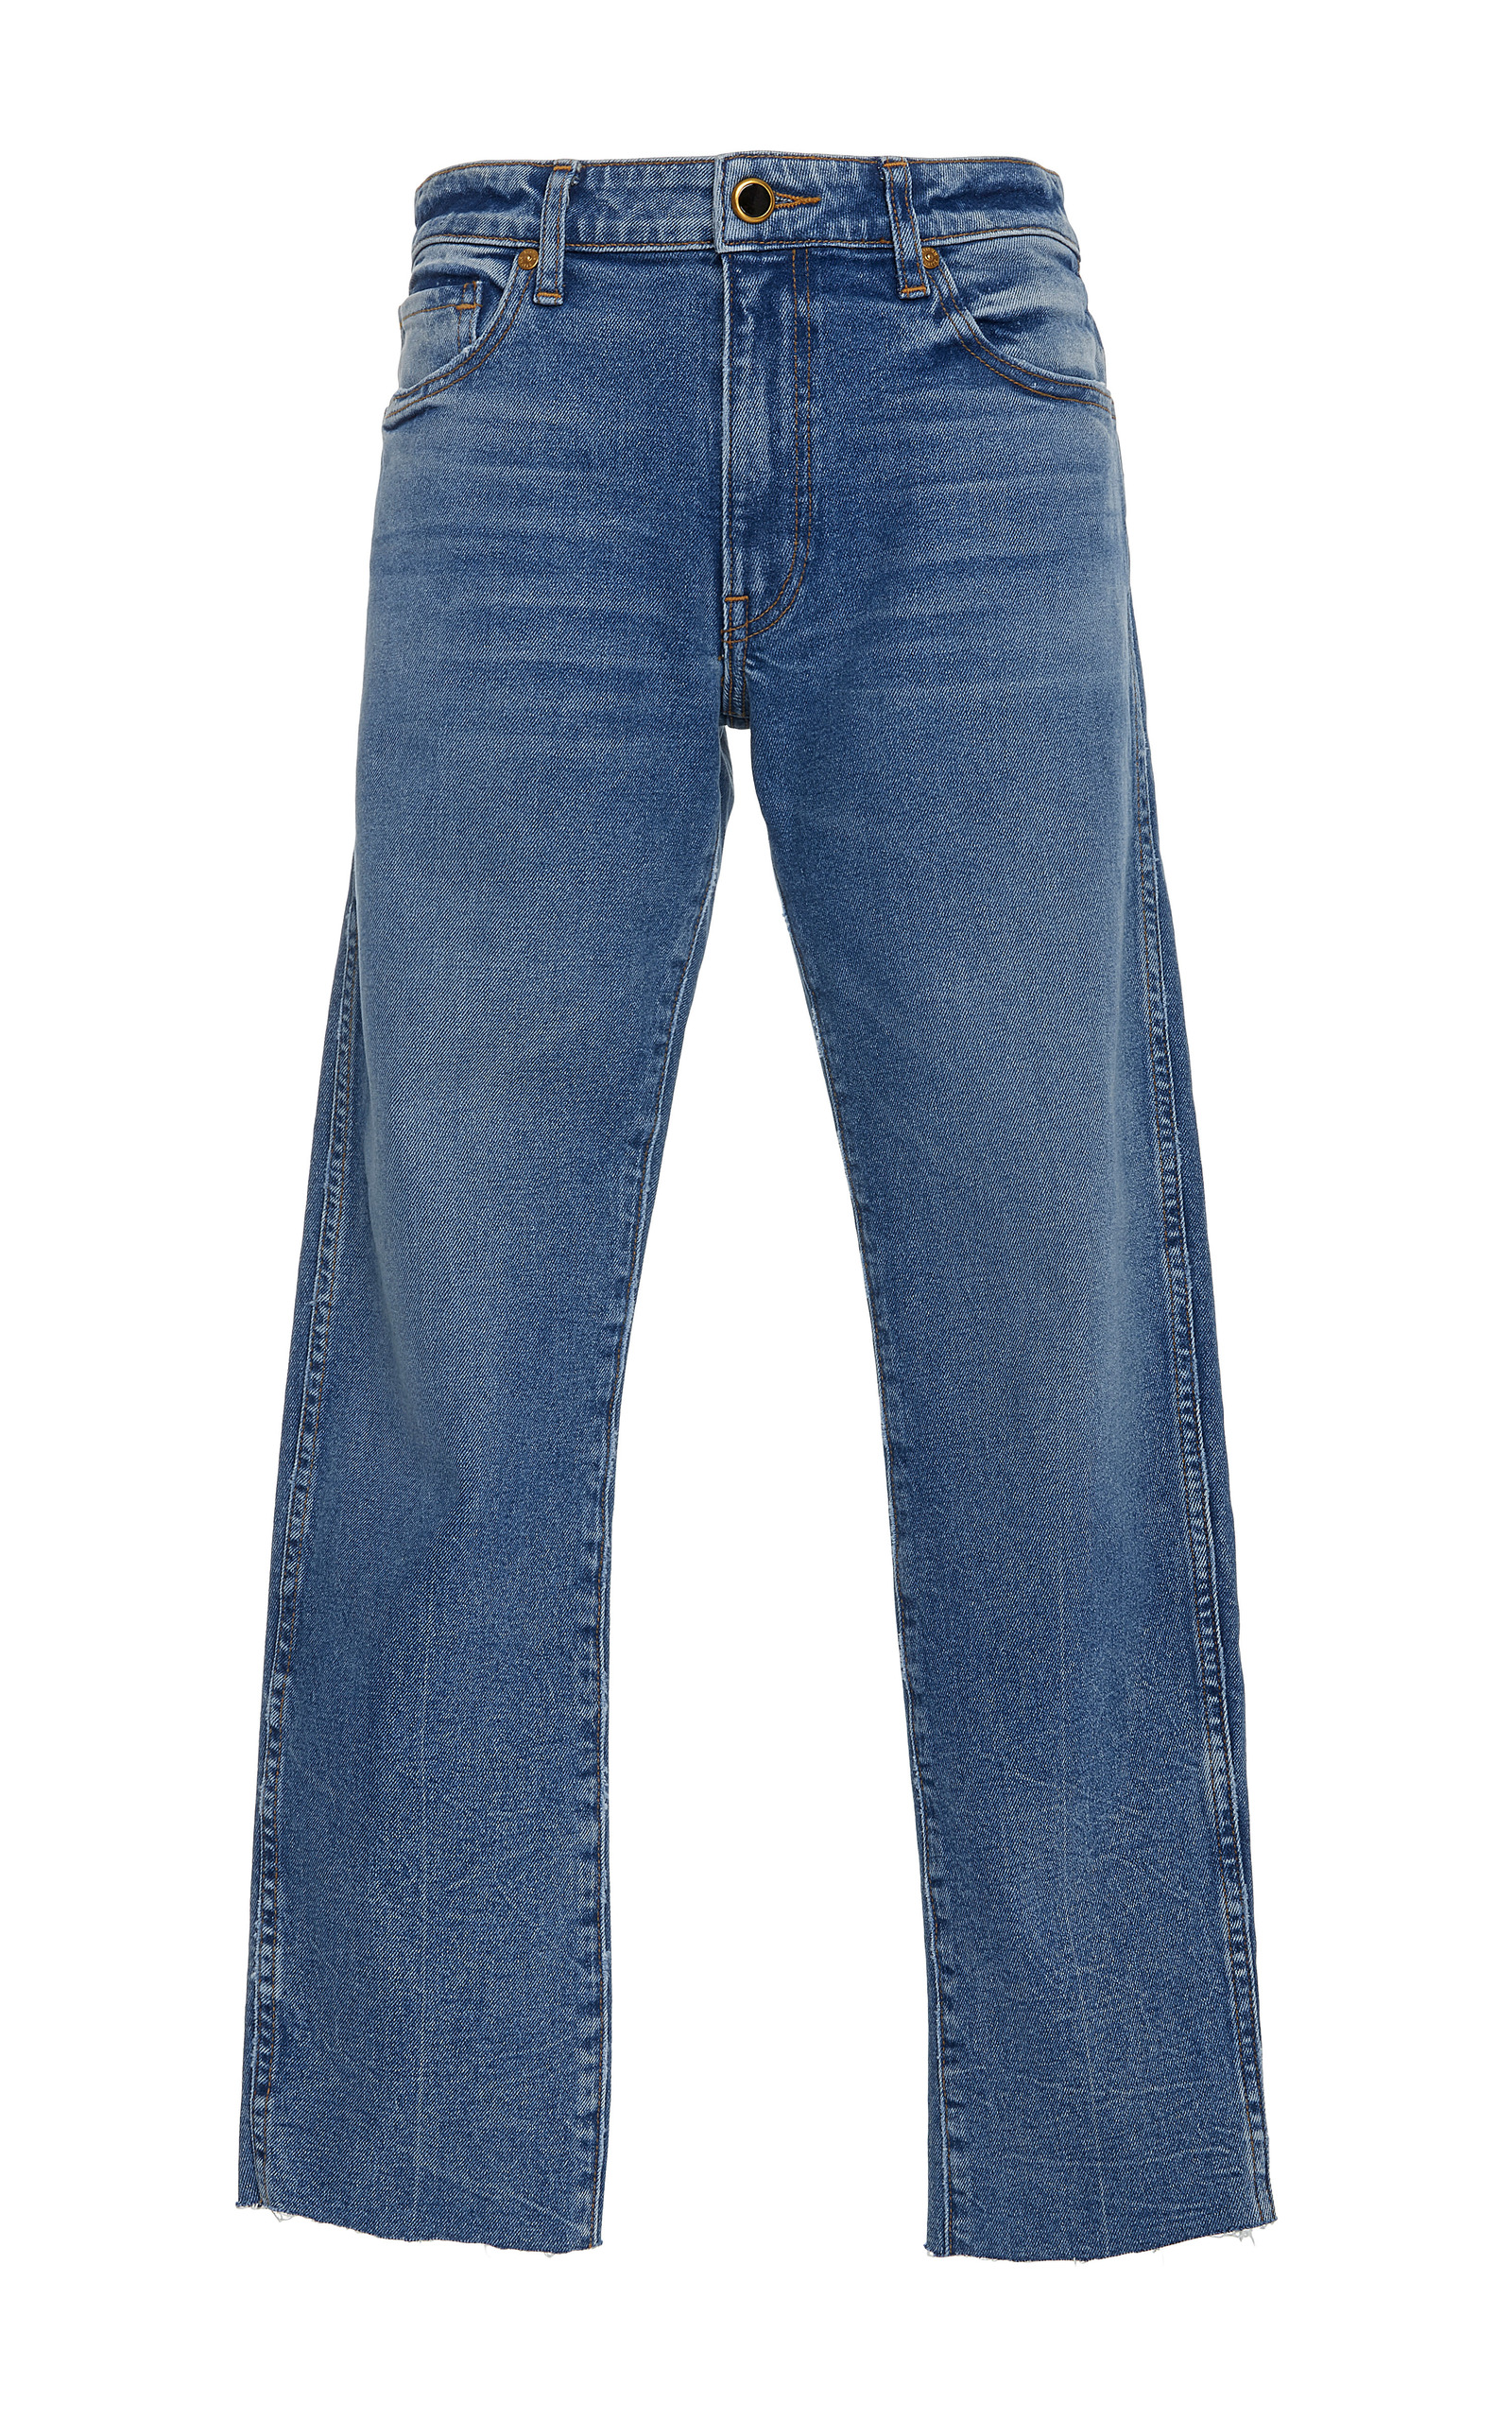 Khaite is making the perfect casual jeans this season. Fitted on the waist and slightly loose through the thighs (a flattering effect) and cropped at the exactly right spot on your ankles to make your legs look extra long.